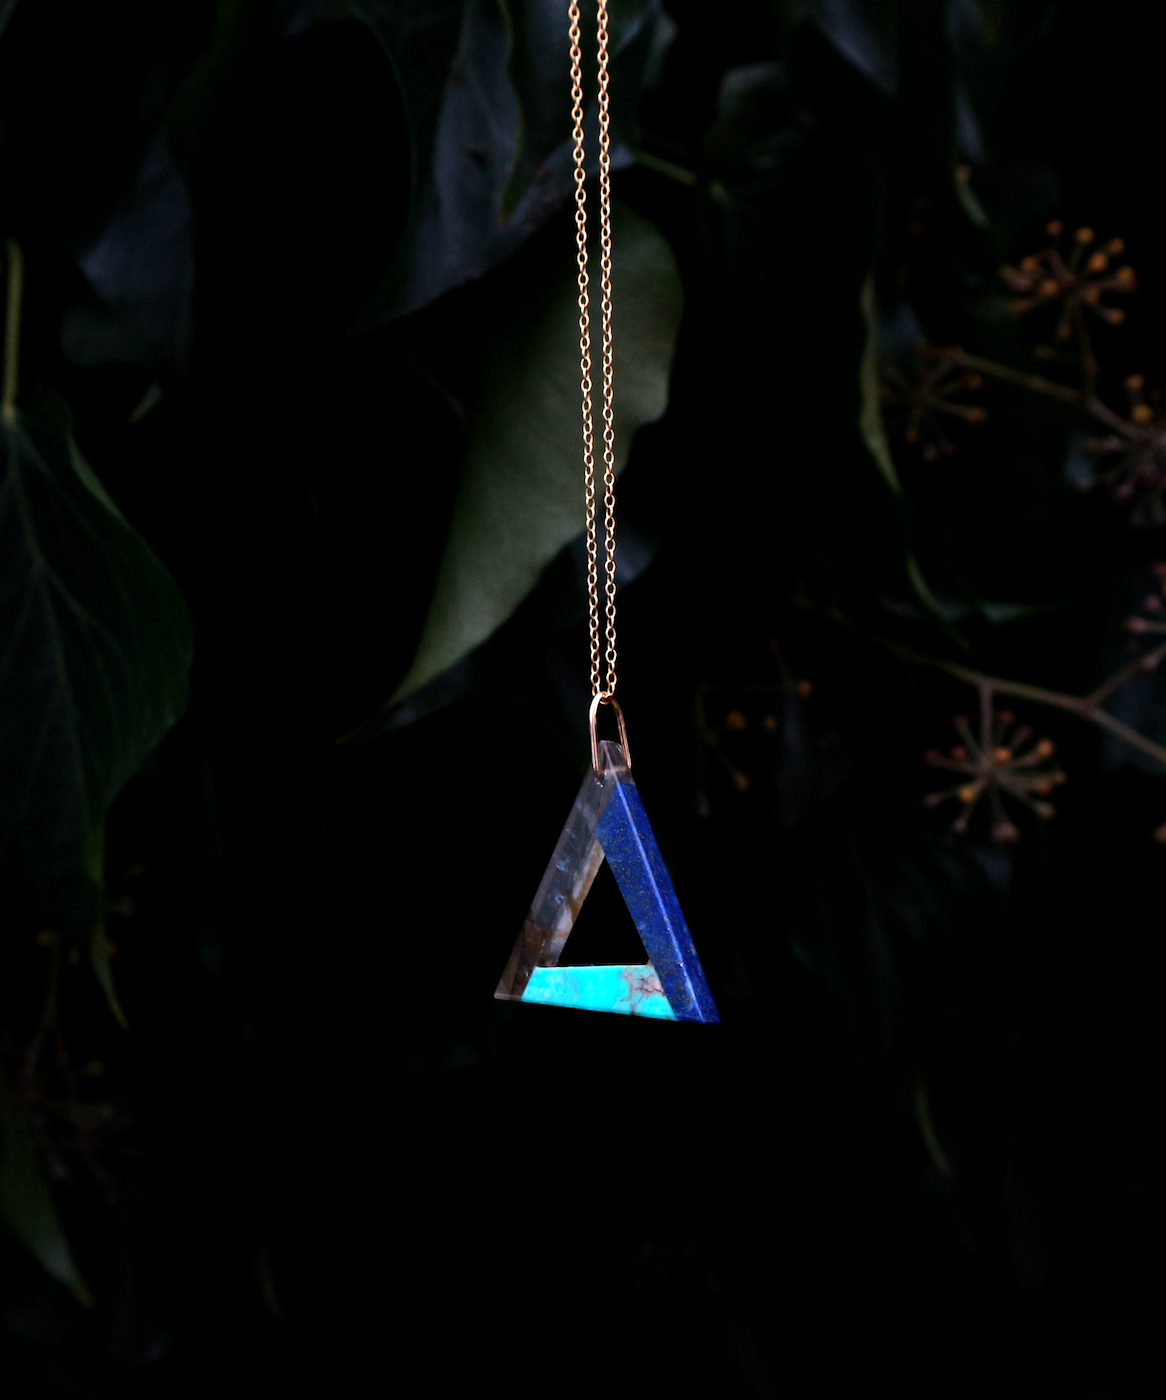 Turquise, Labradorite and Lapiz ∞ Stone necklace